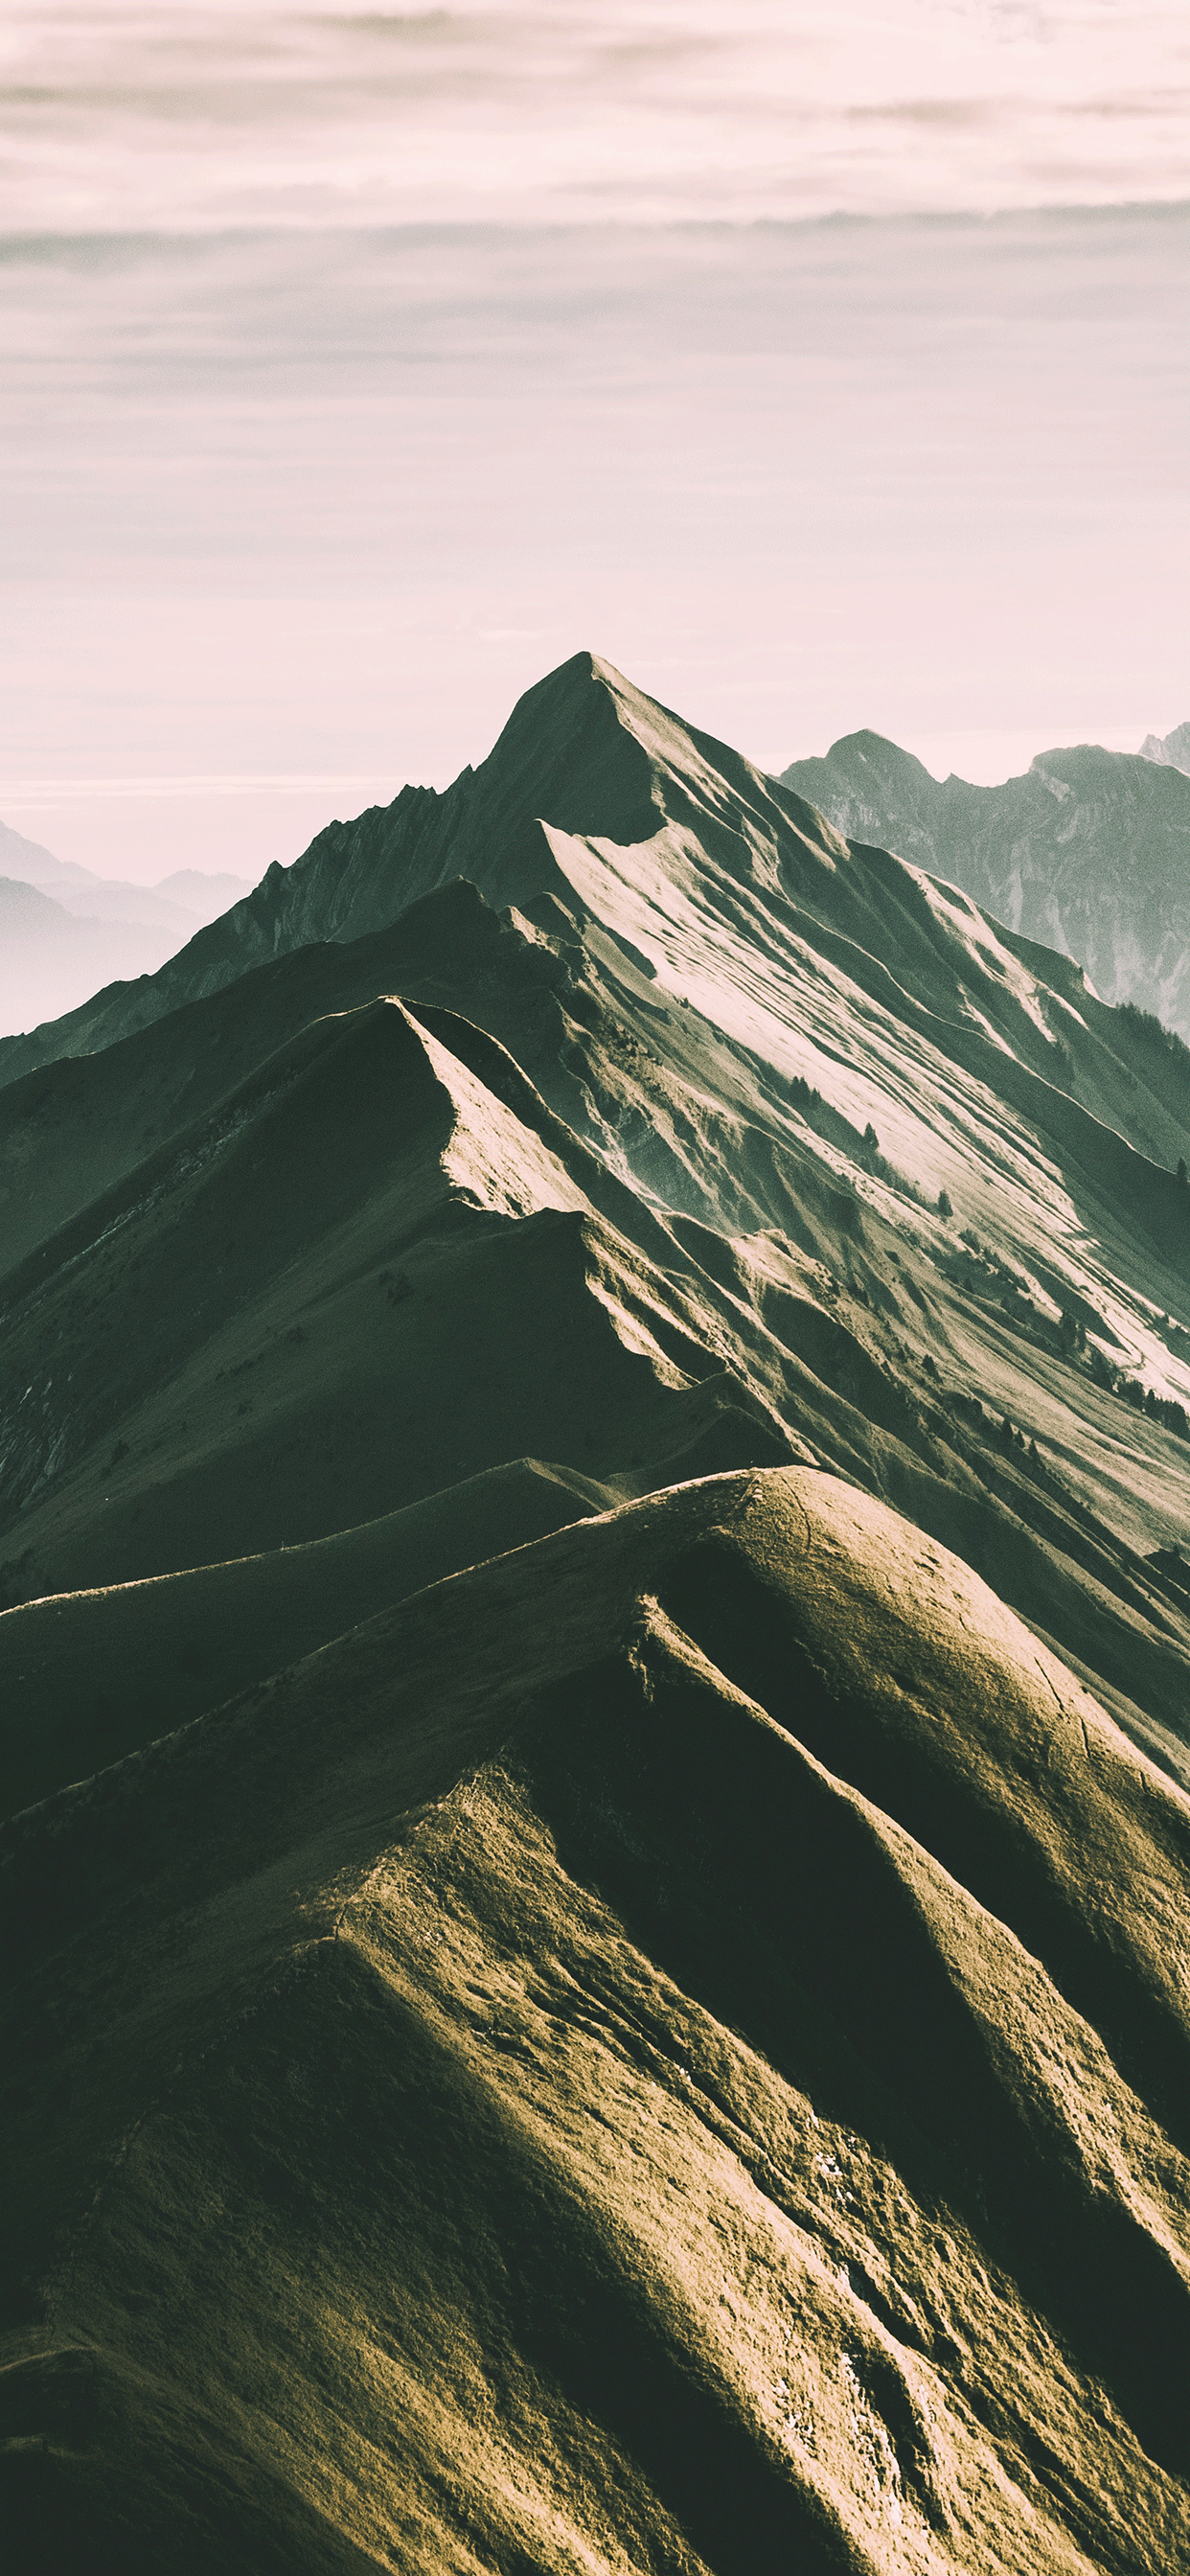 iPhone wallpaper mountains augsmatthorn Mountains